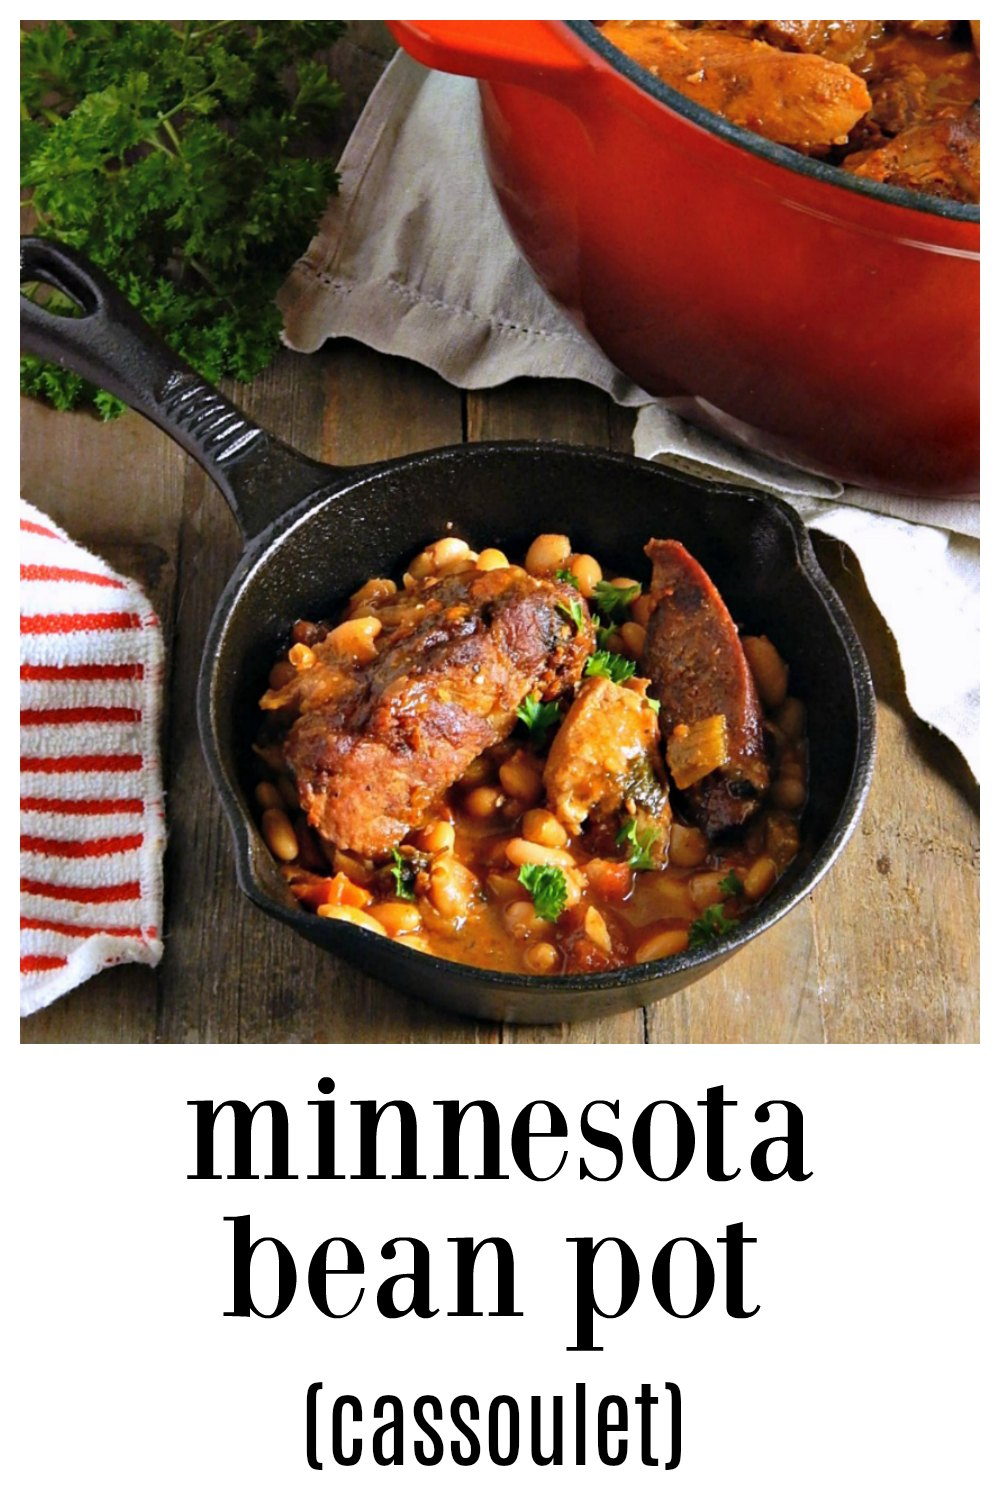 """Yes, beans can be fabulous, like this Minnesota Cassoulet """"Bean Pot"""" full of chicken, pork, bacon, and sausage. Now, this screams """"fall!"""" This is long, slow cooking at it's best. #BeanPot #MinnesotaCassoulet #BeanPot #MinnesotaCassoulet #Cassoulet #BeansPorkSausages"""